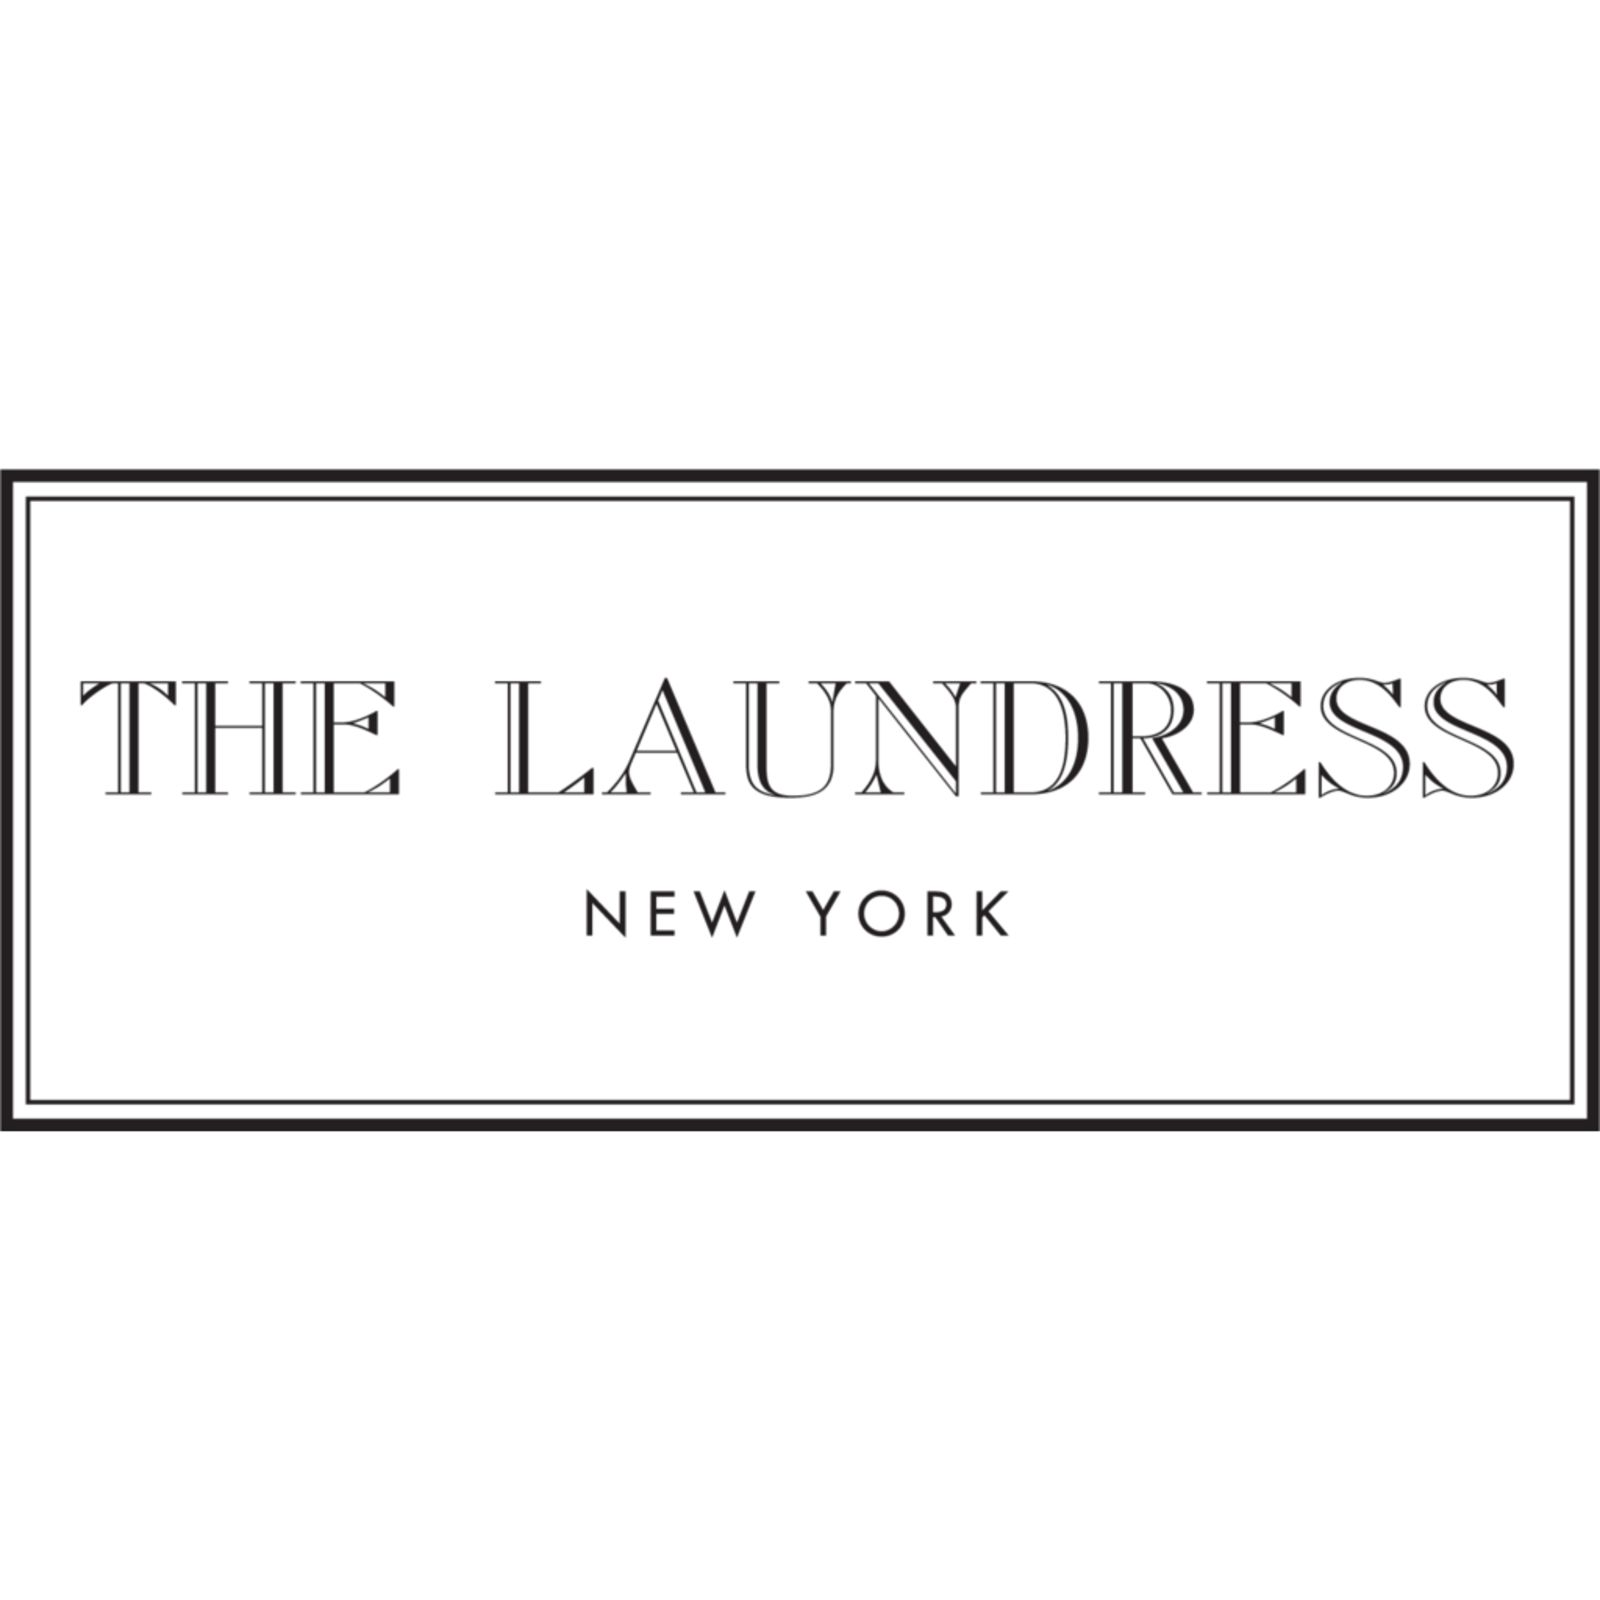 THE LAUNDRESS®